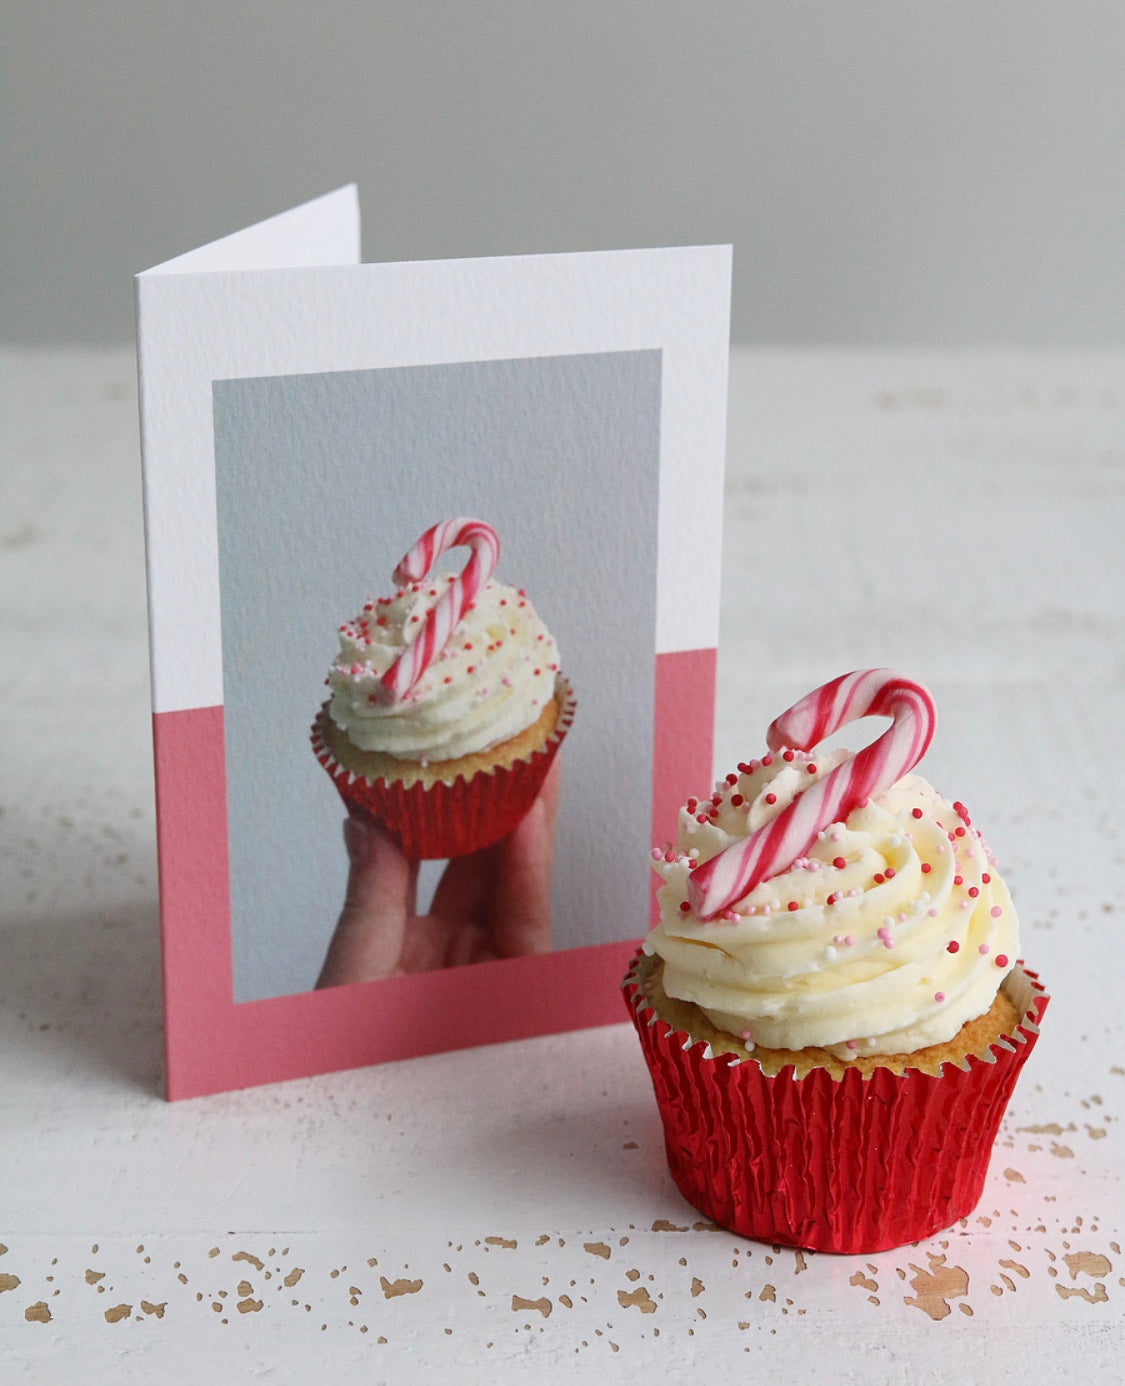 Candy Cane Cupcake with Candy Cane Cupcake Photo Christmas Card